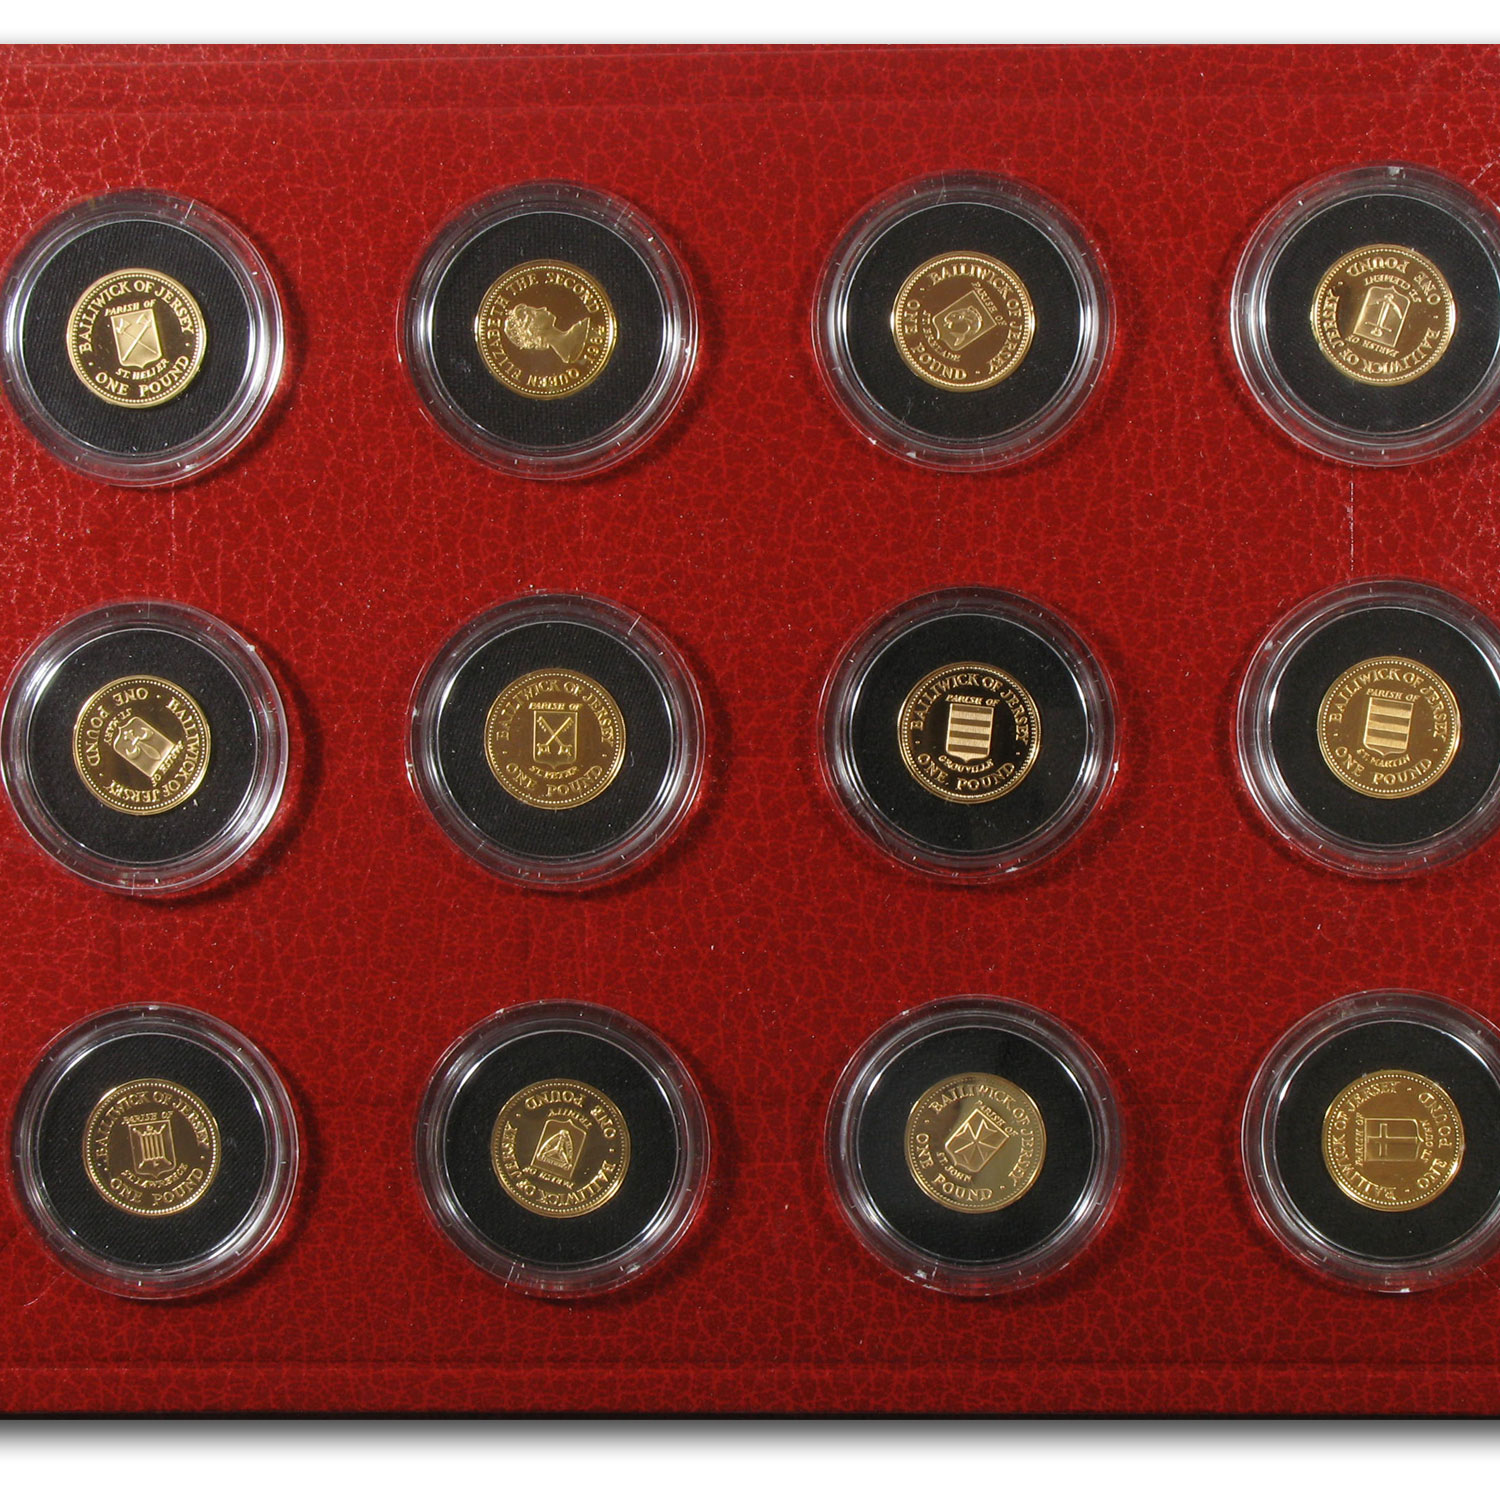 1983-1989 States of Jersey 12-Coin Gold Proof Set